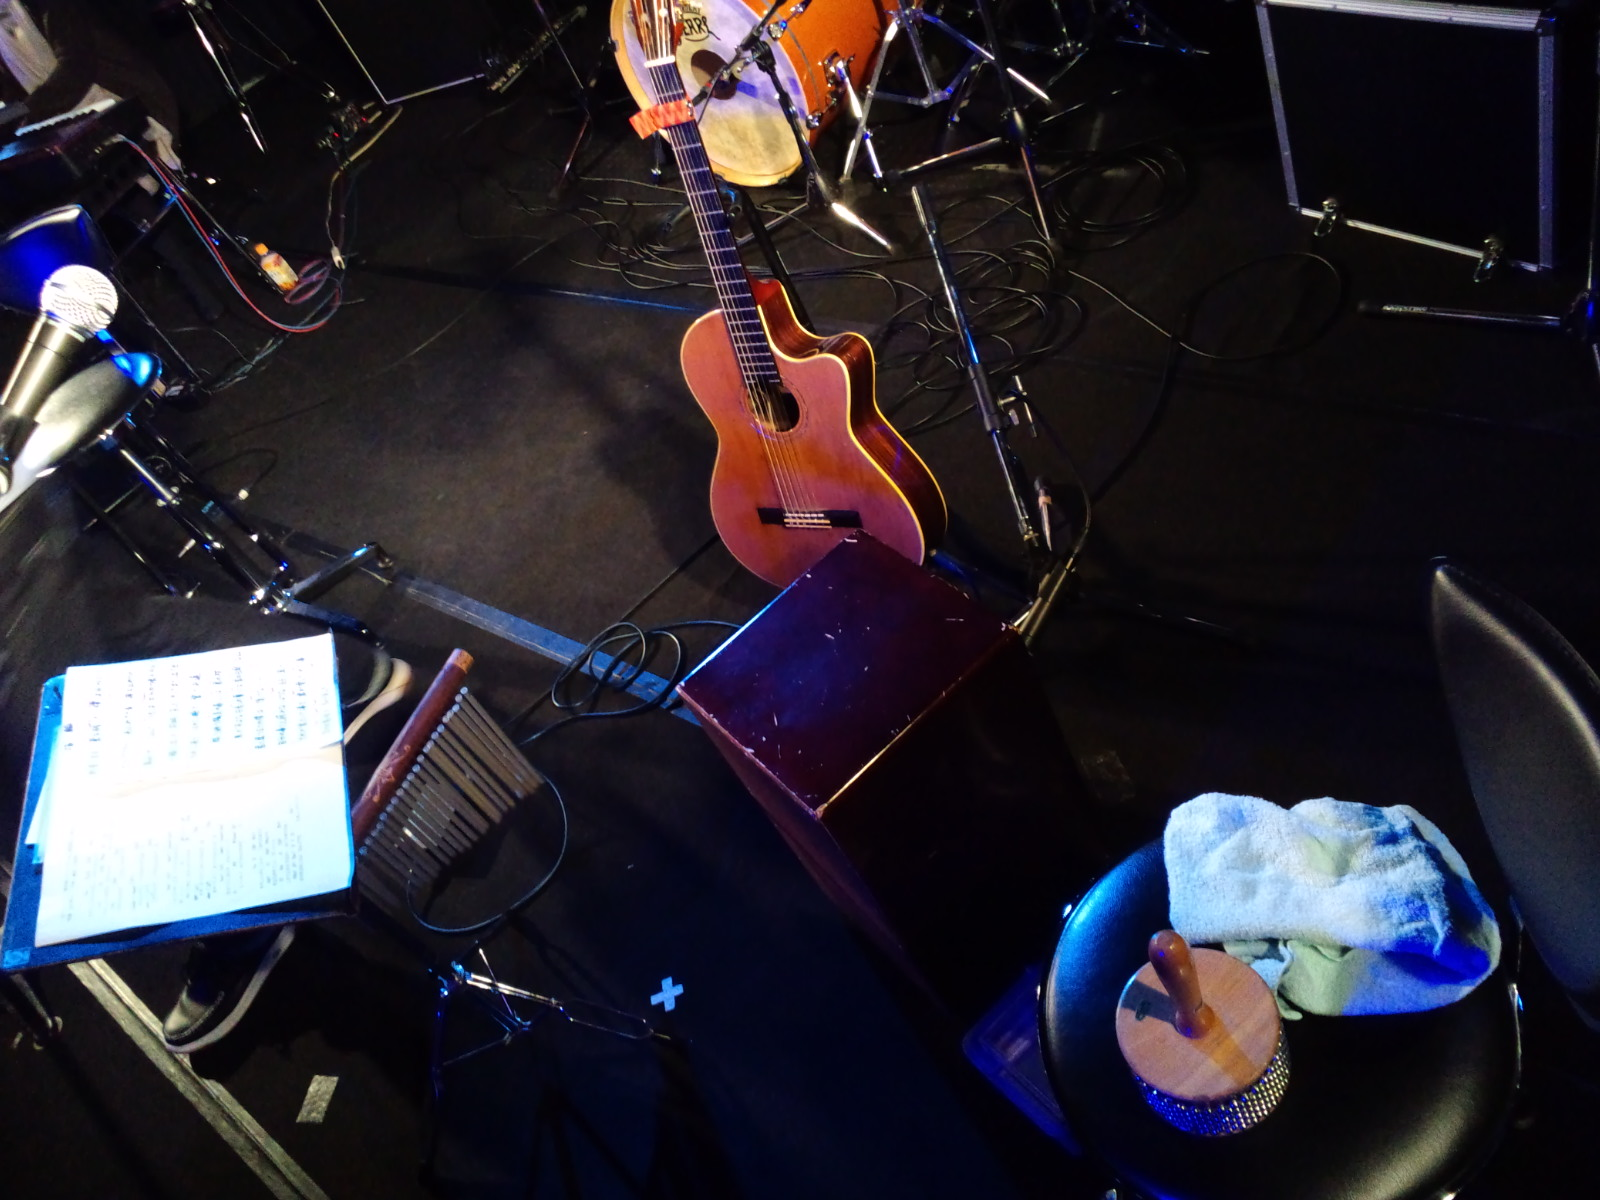 Just played!!